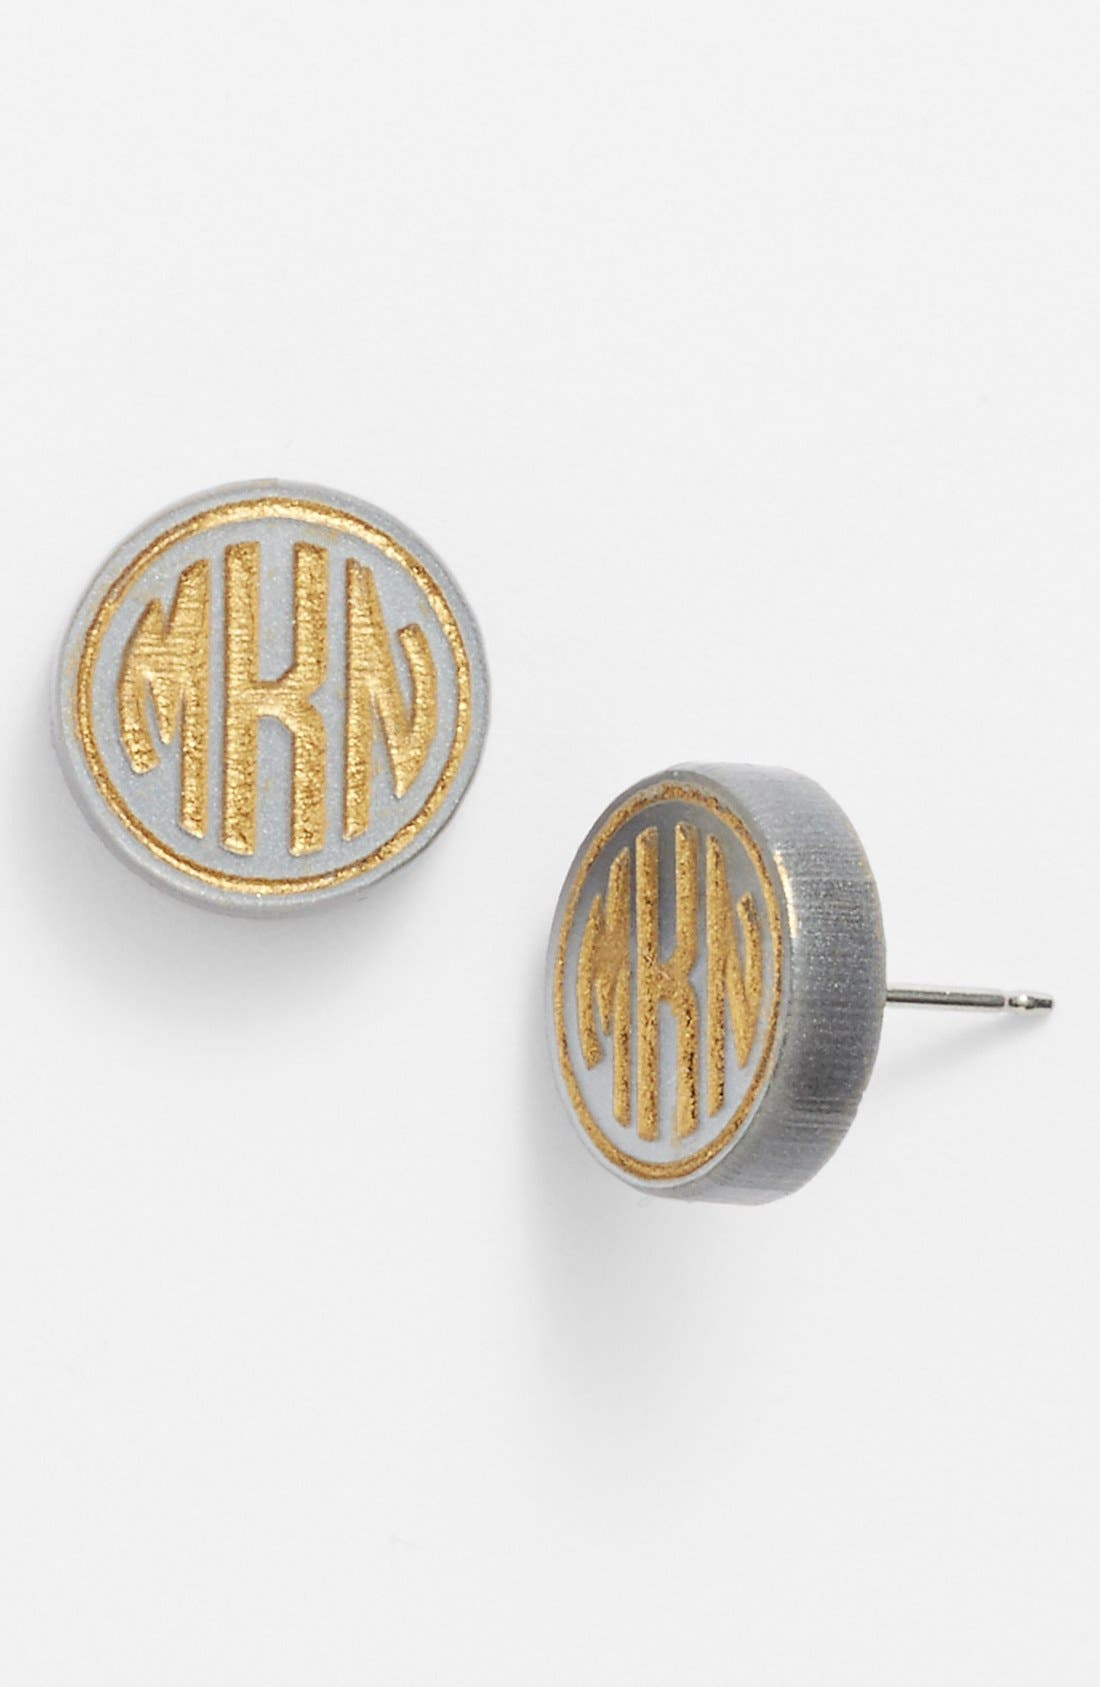 Alternate Image 1 Selected - Moon and Lola 'Chelsea' Small Personalized Monogram Stud Earrings